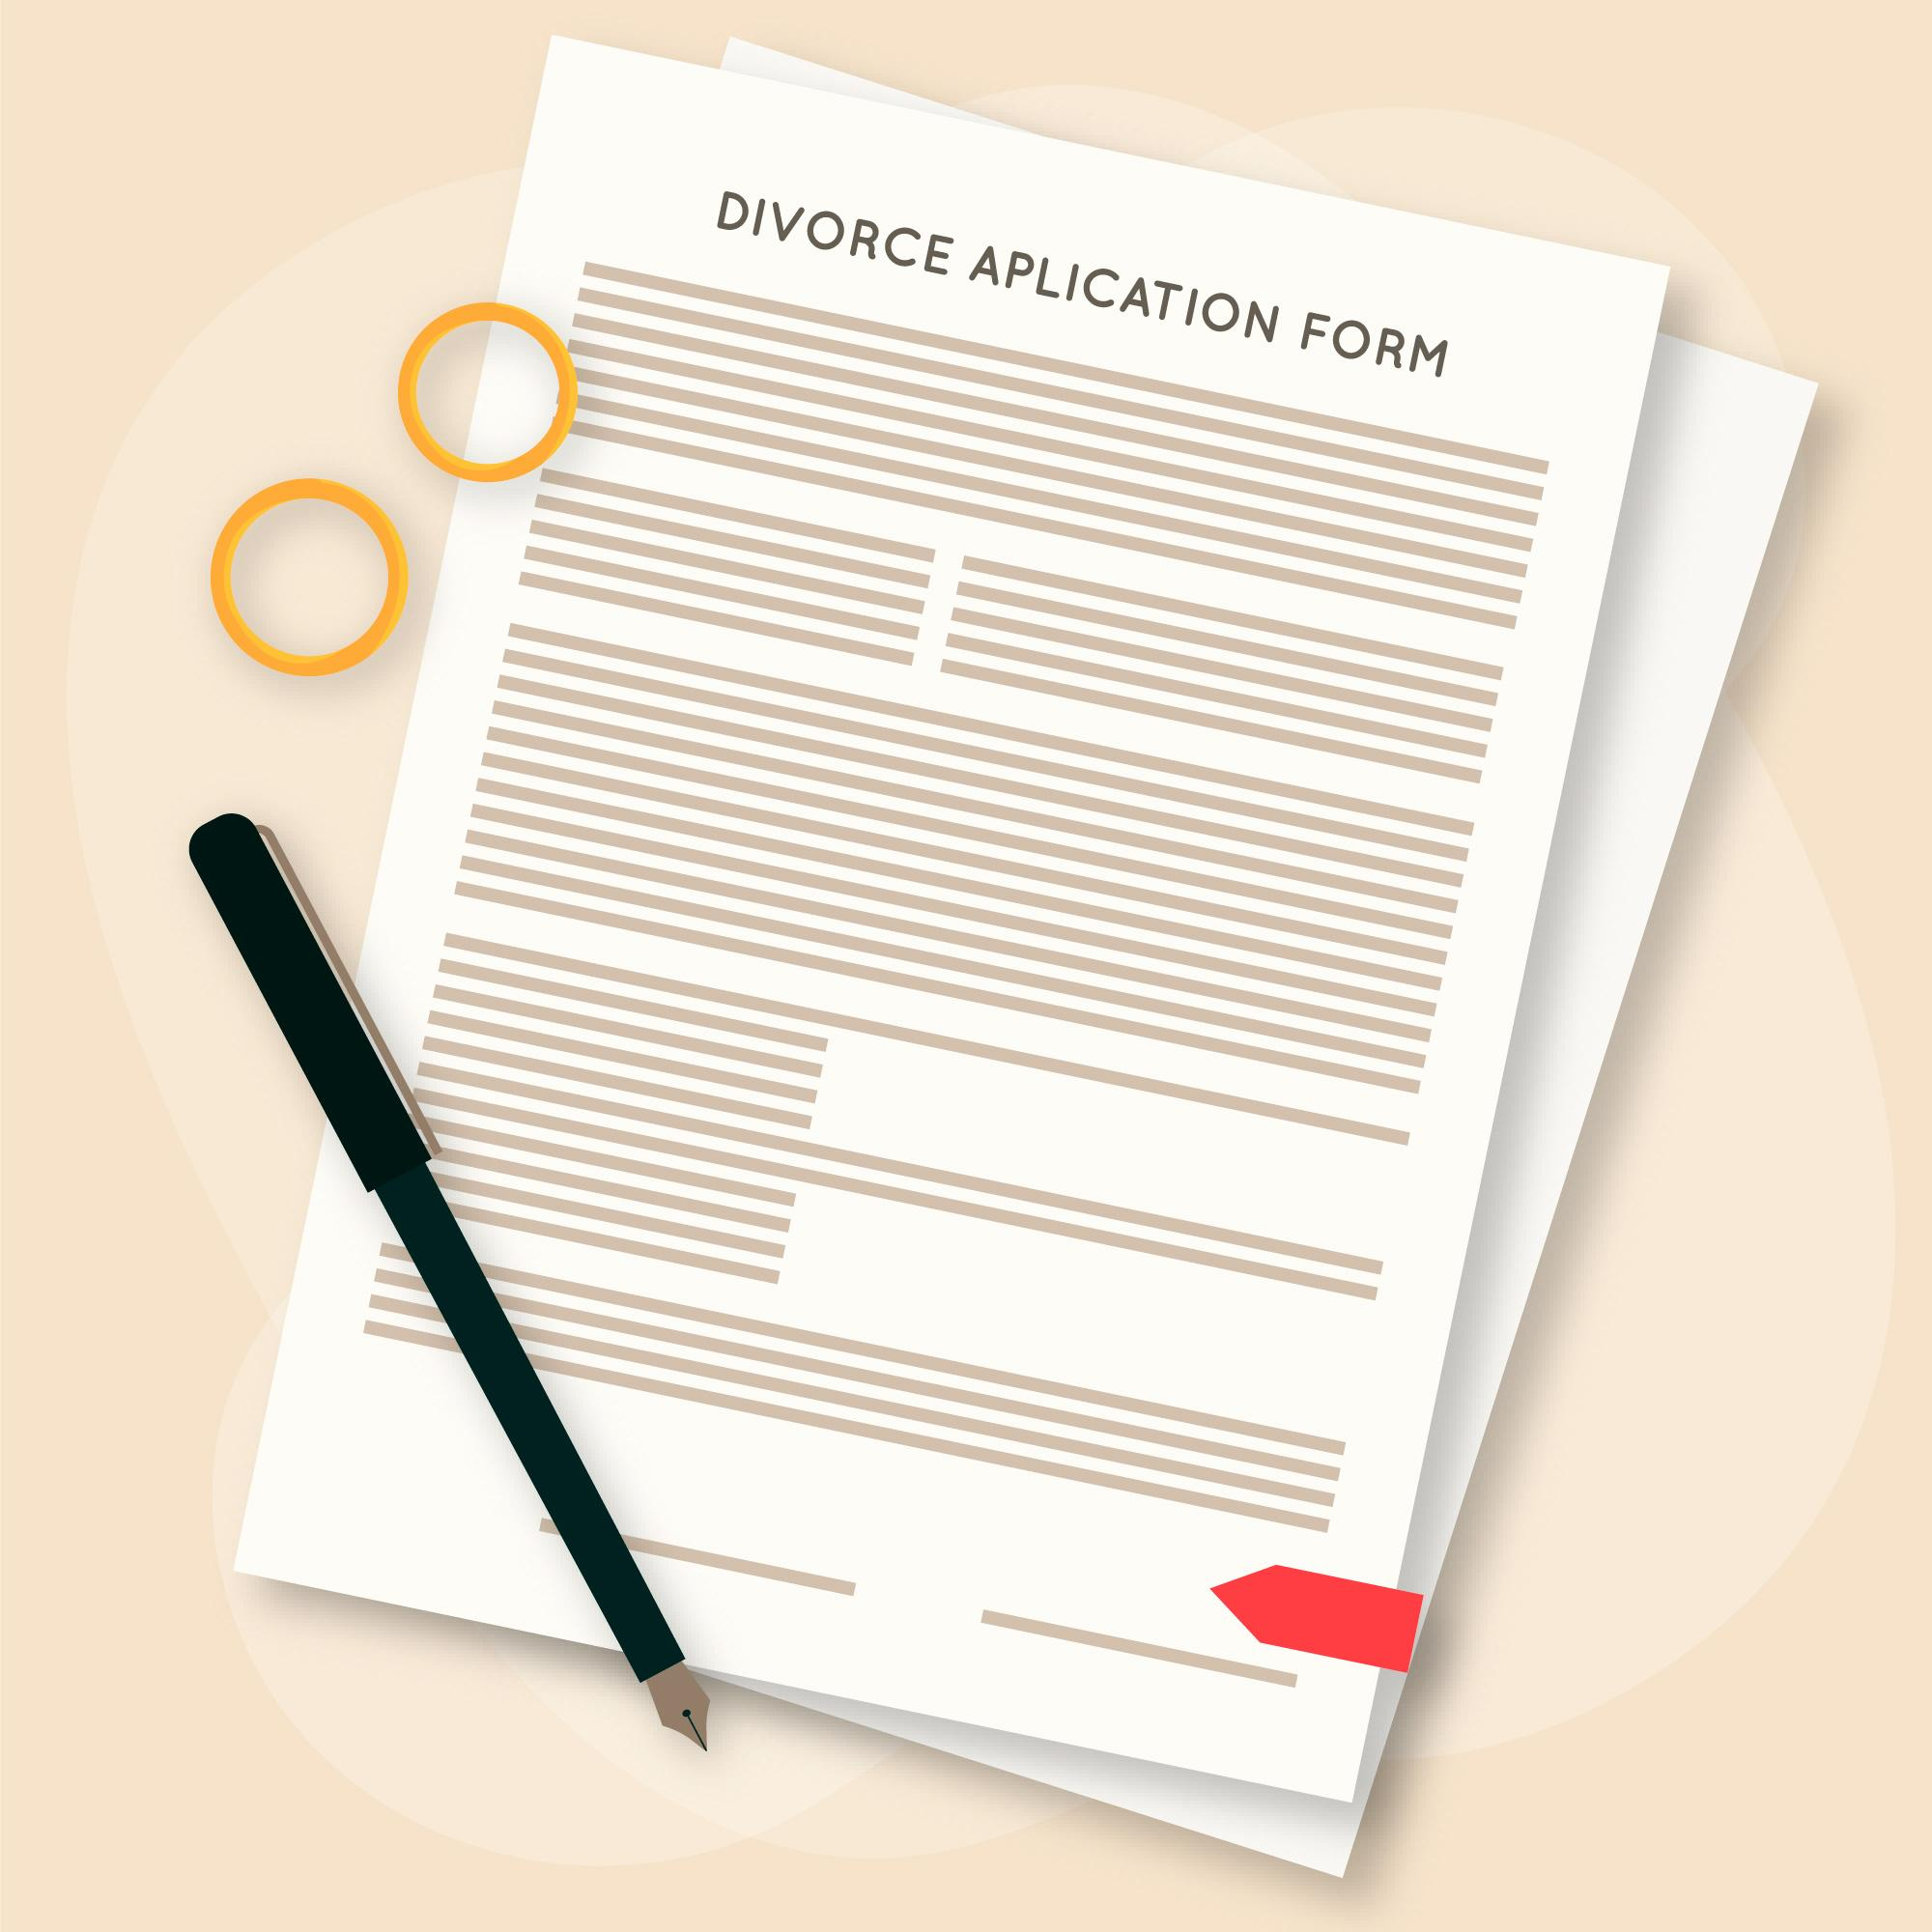 Documents required for filing a Divorce